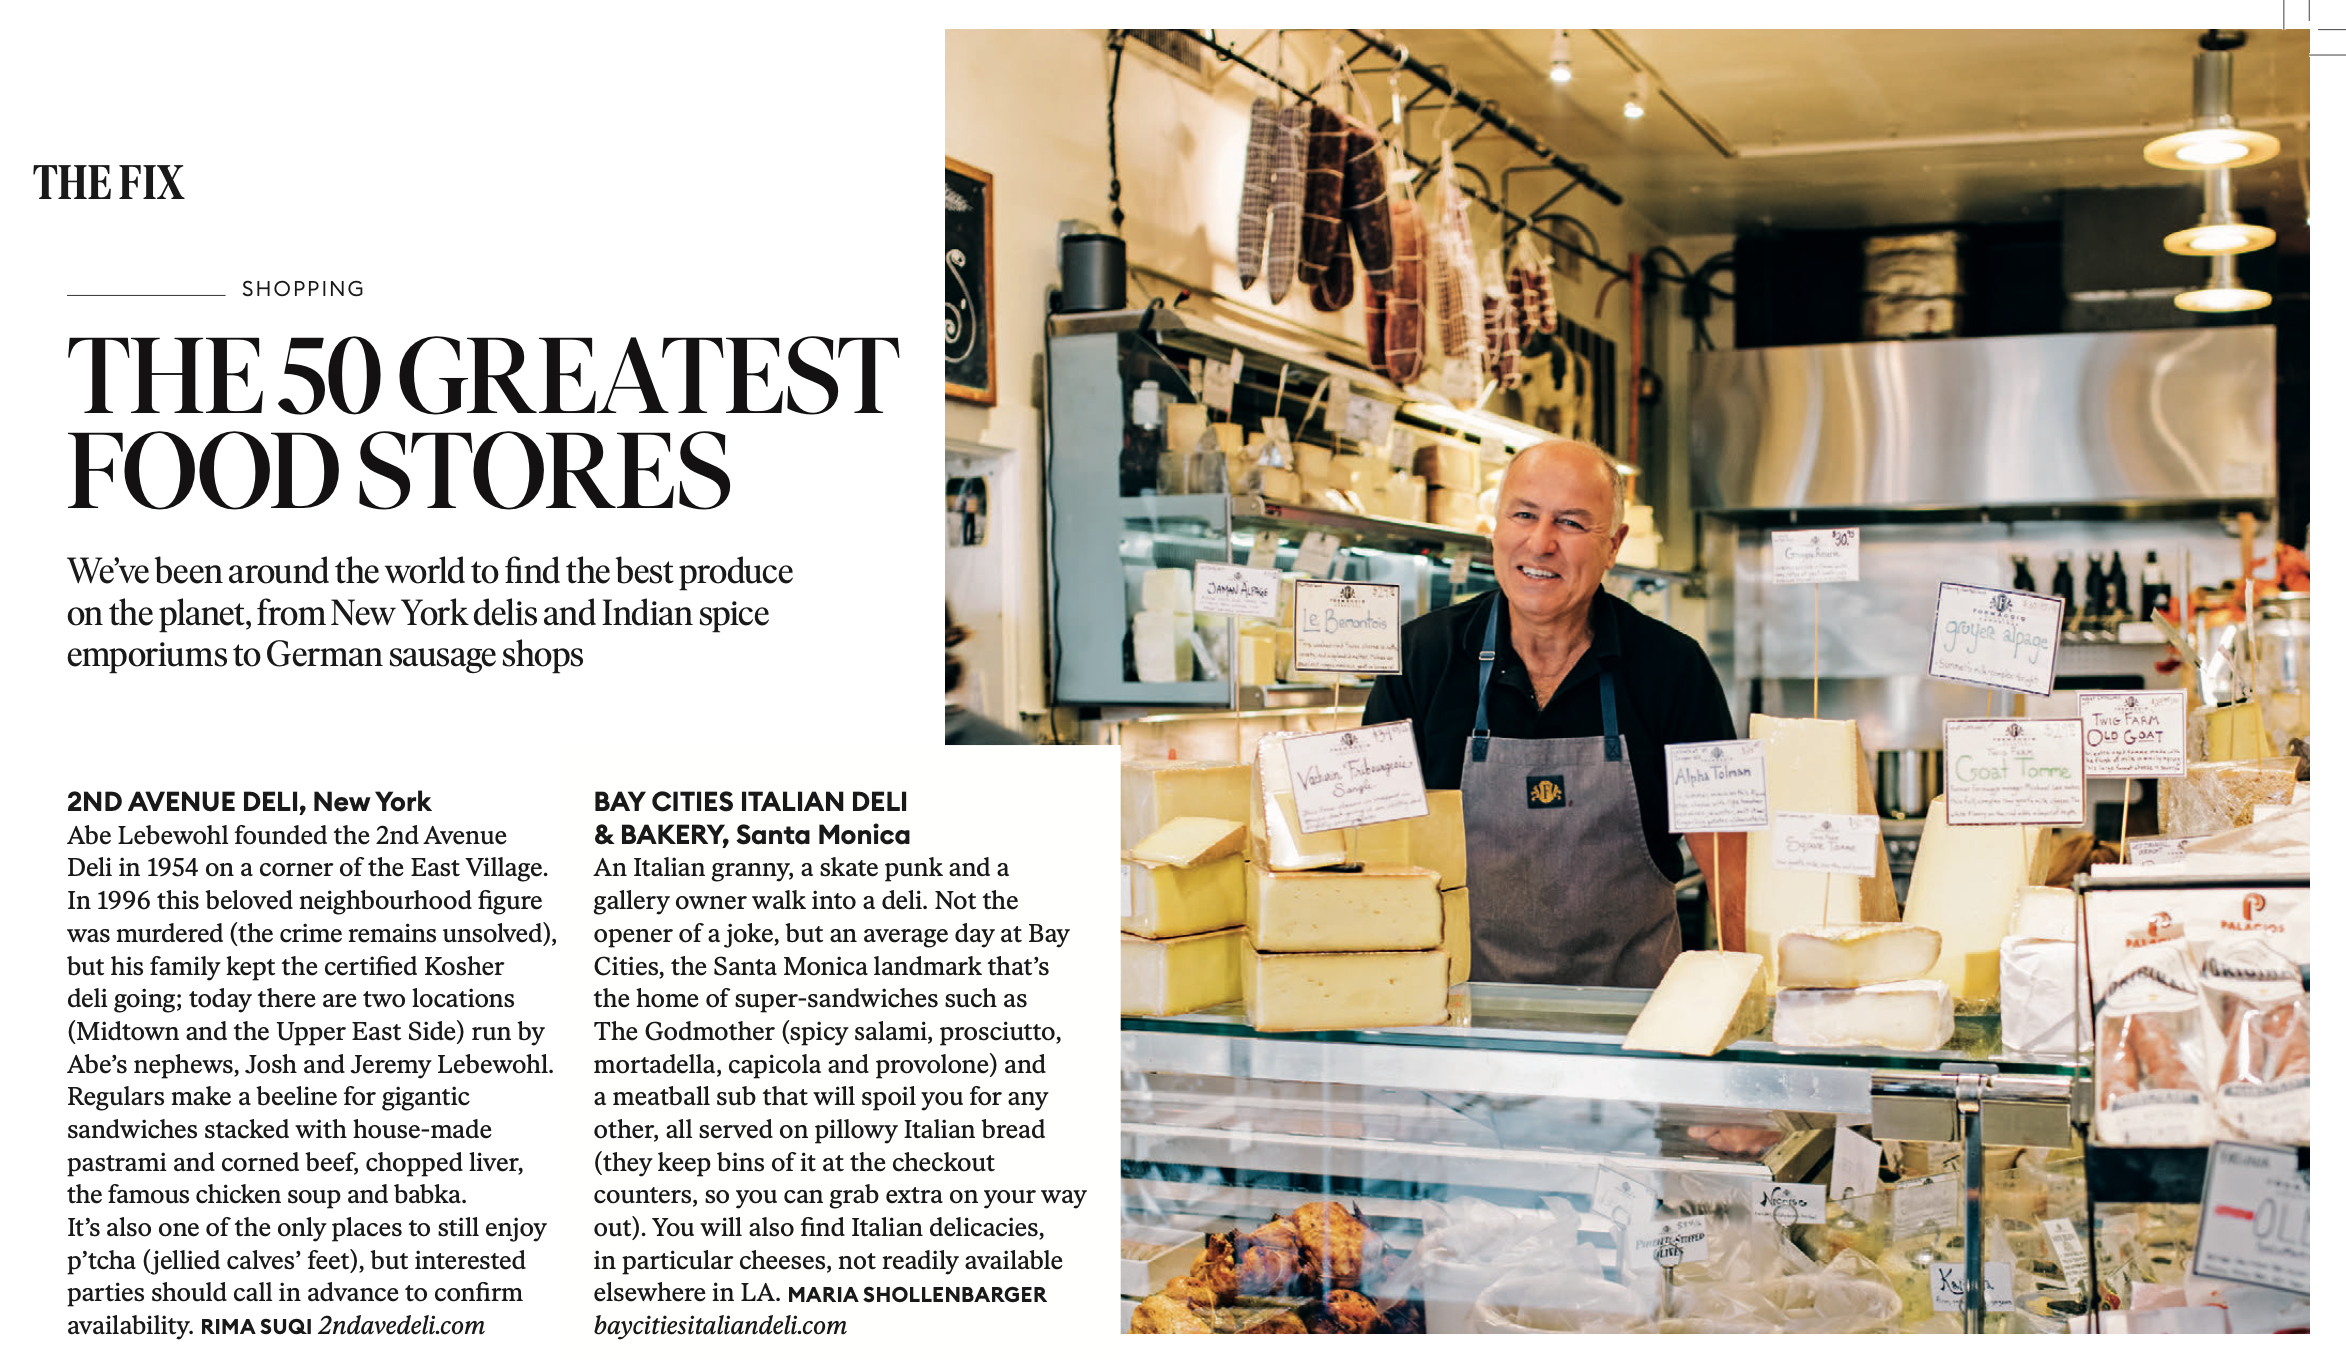 50 Greatest Food Stores, Rima Suqi, How To Spend It